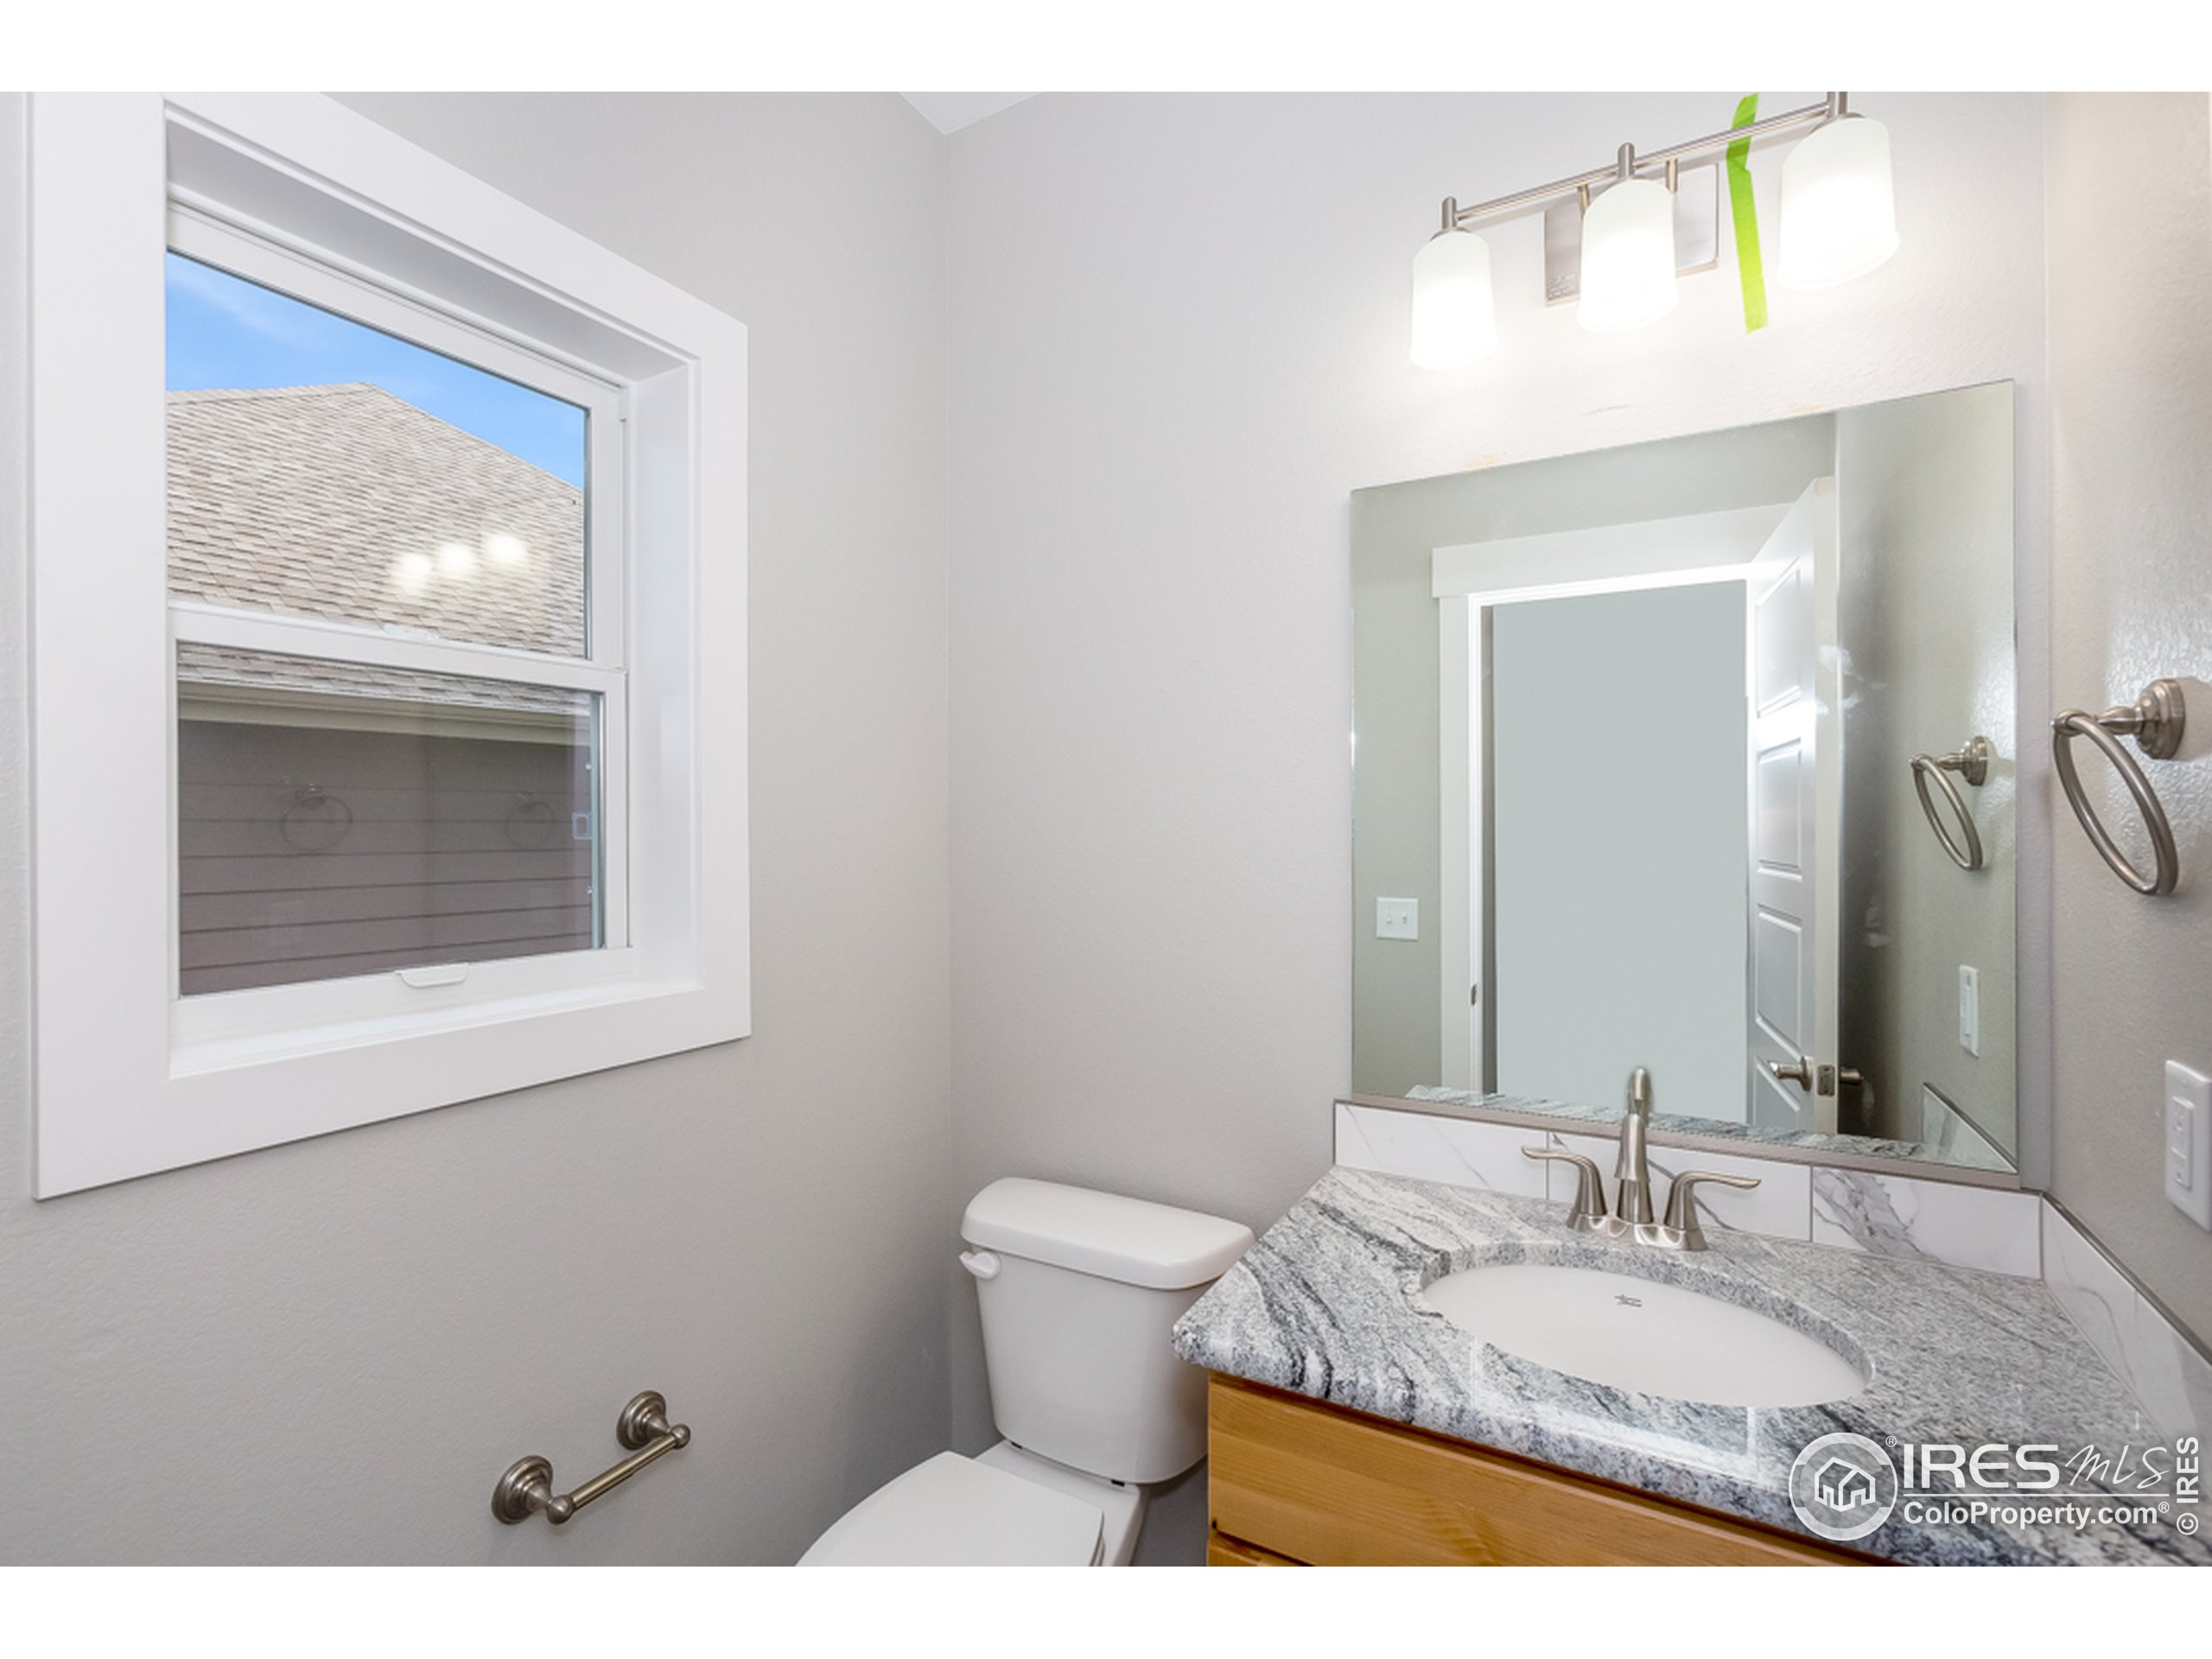 Powder bath conveniently located off the living room/entry area